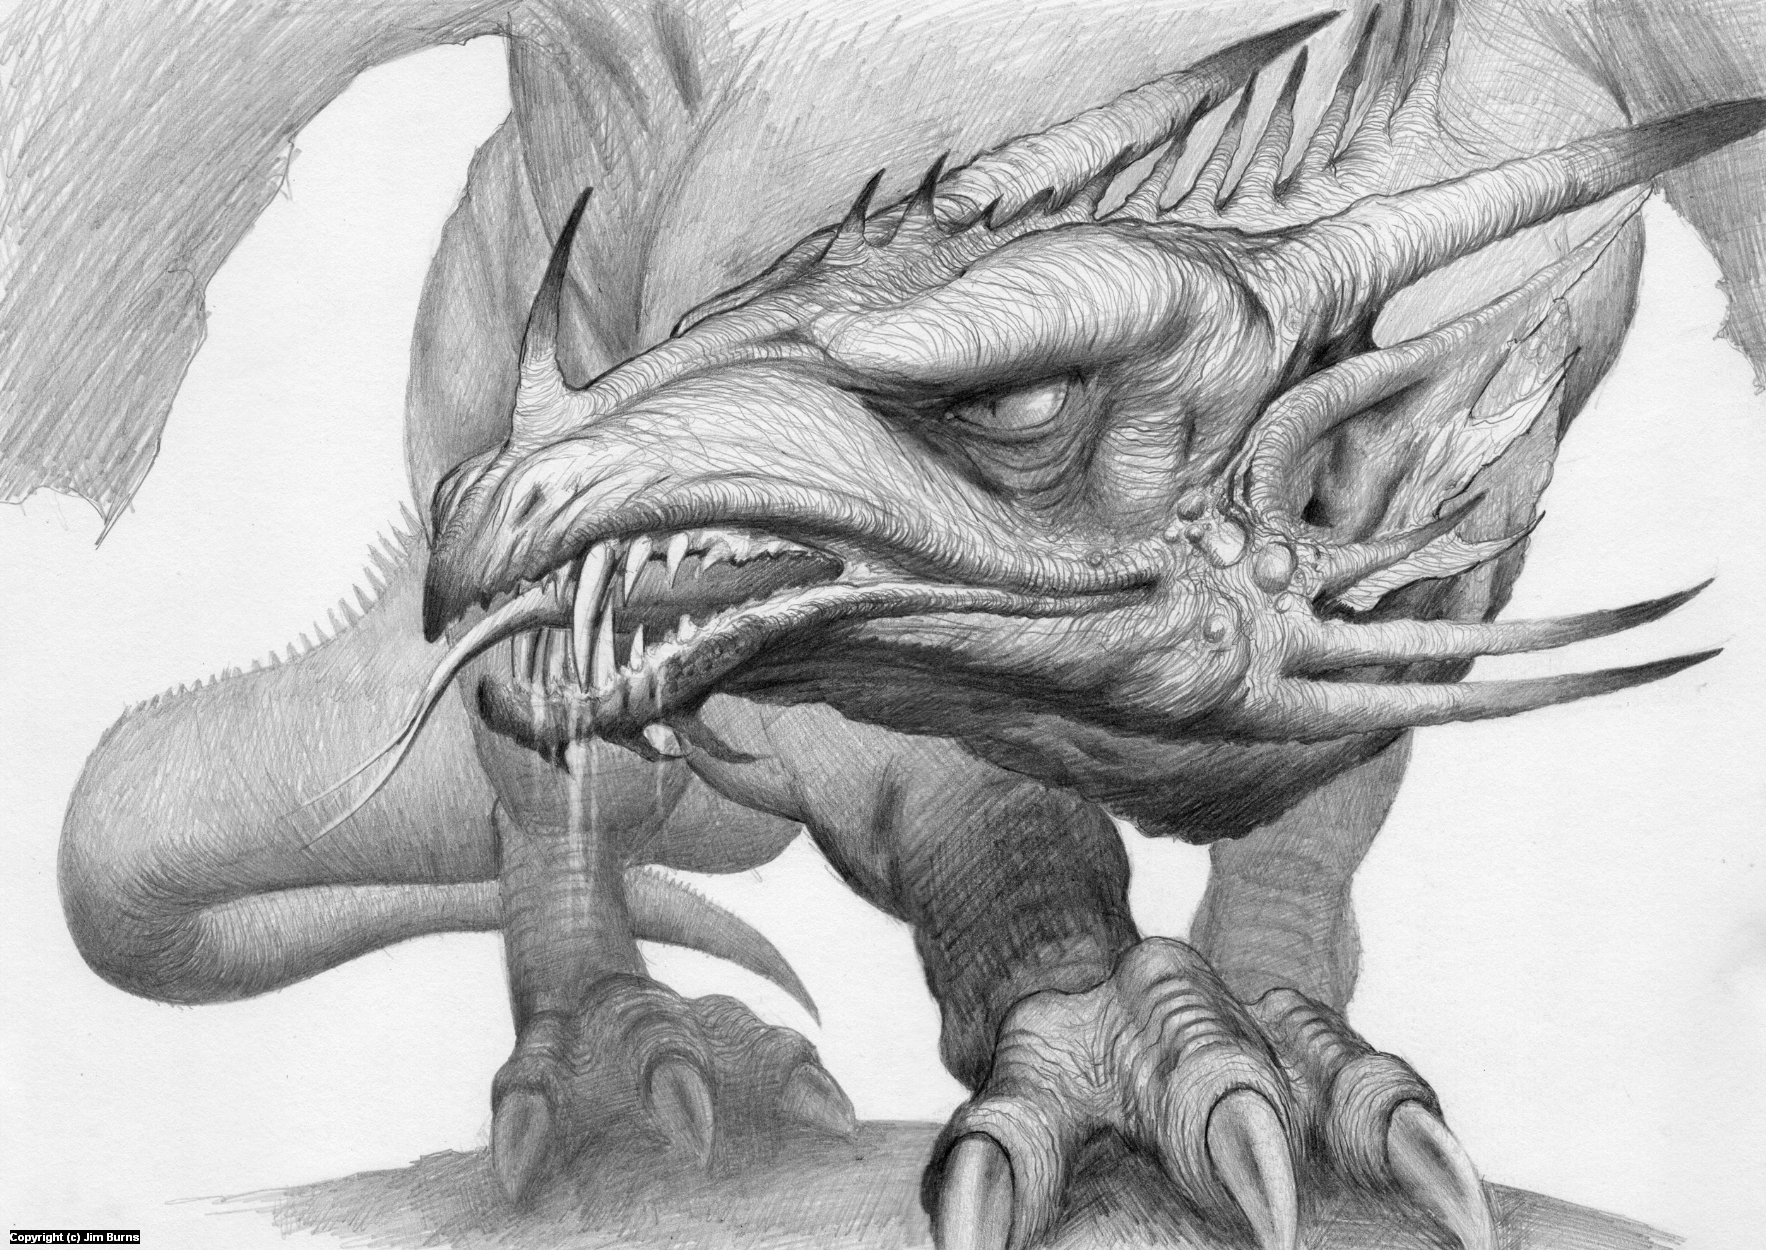 'Big Dragon Study' Artwork by Jim Burns